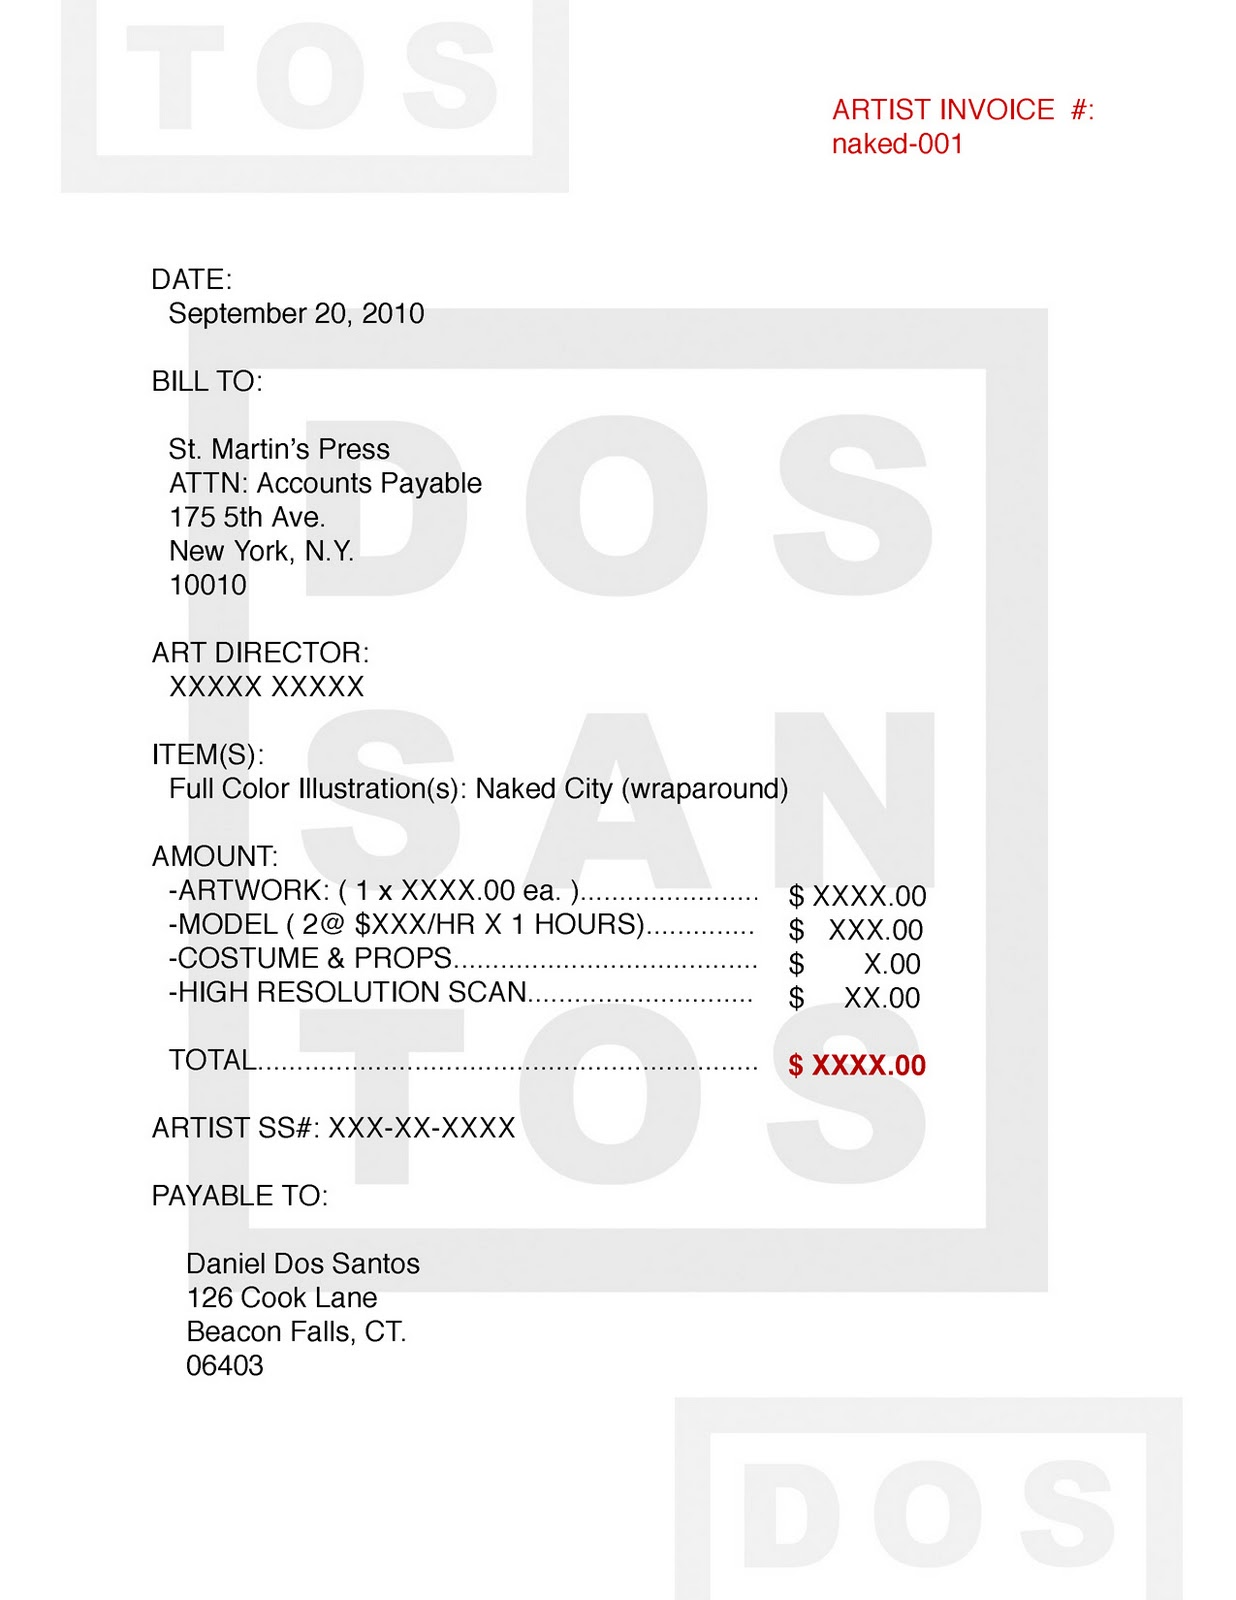 Atvingus  Personable Muddy Colors Invoices With Great I Believe That This Format Contains All The Pertinent Information That A Good Invoice Should Have And Can Serve As A Decent Template For Your Own With Divine Invoices Software Also What Is A Proforma Invoice In The Uk In Addition Excel Free Invoice Template And Sample Affidavit Of Loss Sales Invoice As Well As Honda Civic Ex Invoice Price Additionally Cleaning Service Invoice Template Free From Muddycolorsblogspotcom With Atvingus  Great Muddy Colors Invoices With Divine I Believe That This Format Contains All The Pertinent Information That A Good Invoice Should Have And Can Serve As A Decent Template For Your Own And Personable Invoices Software Also What Is A Proforma Invoice In The Uk In Addition Excel Free Invoice Template From Muddycolorsblogspotcom